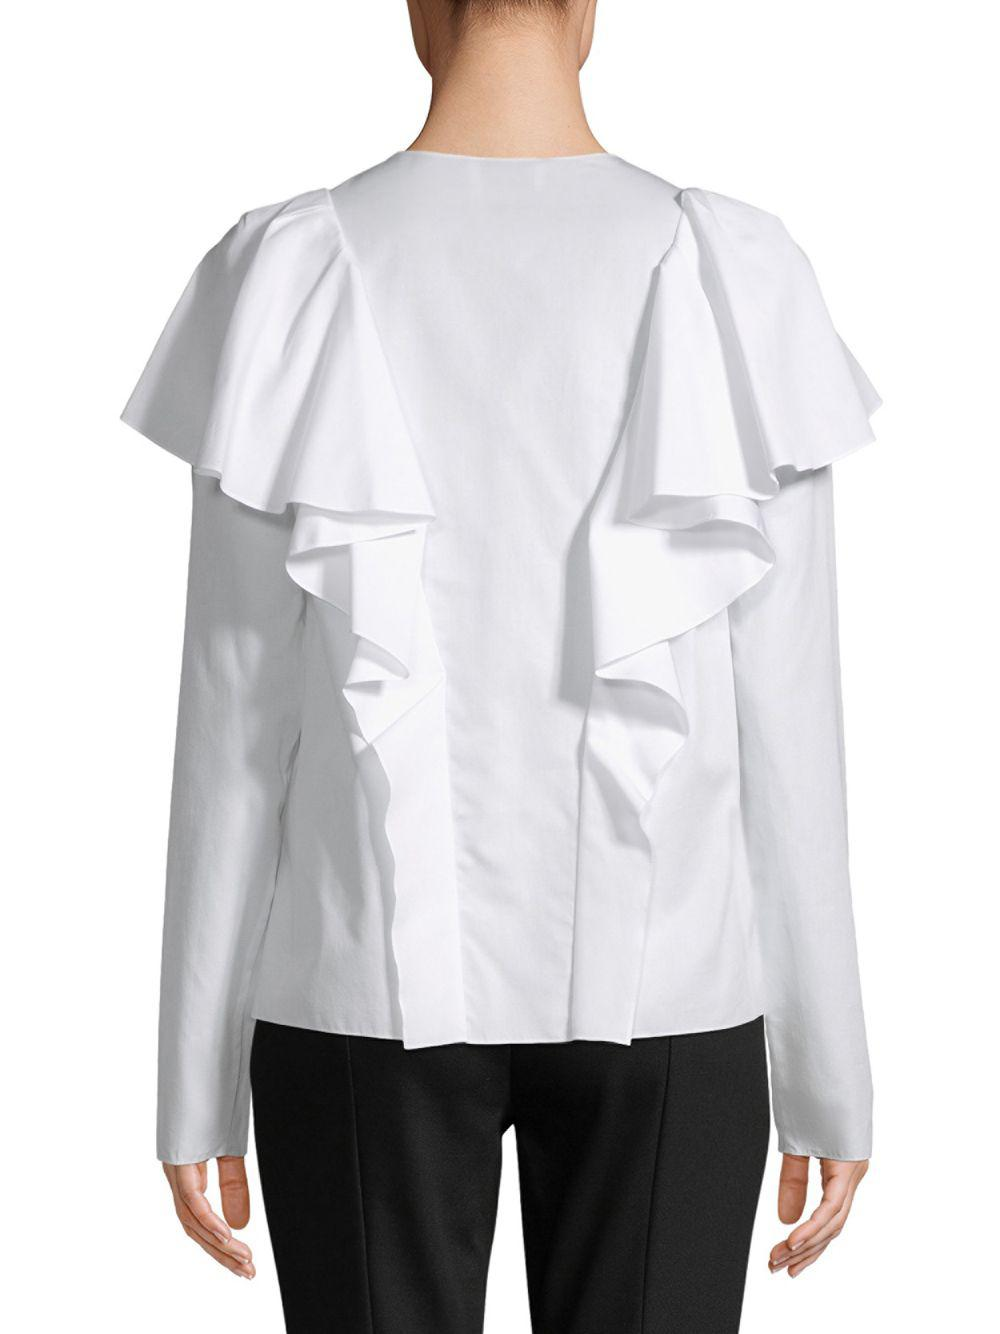 7dd115dd94a064 Lanvin - White Haut Ruffled Cotton Top - Lyst. View fullscreen